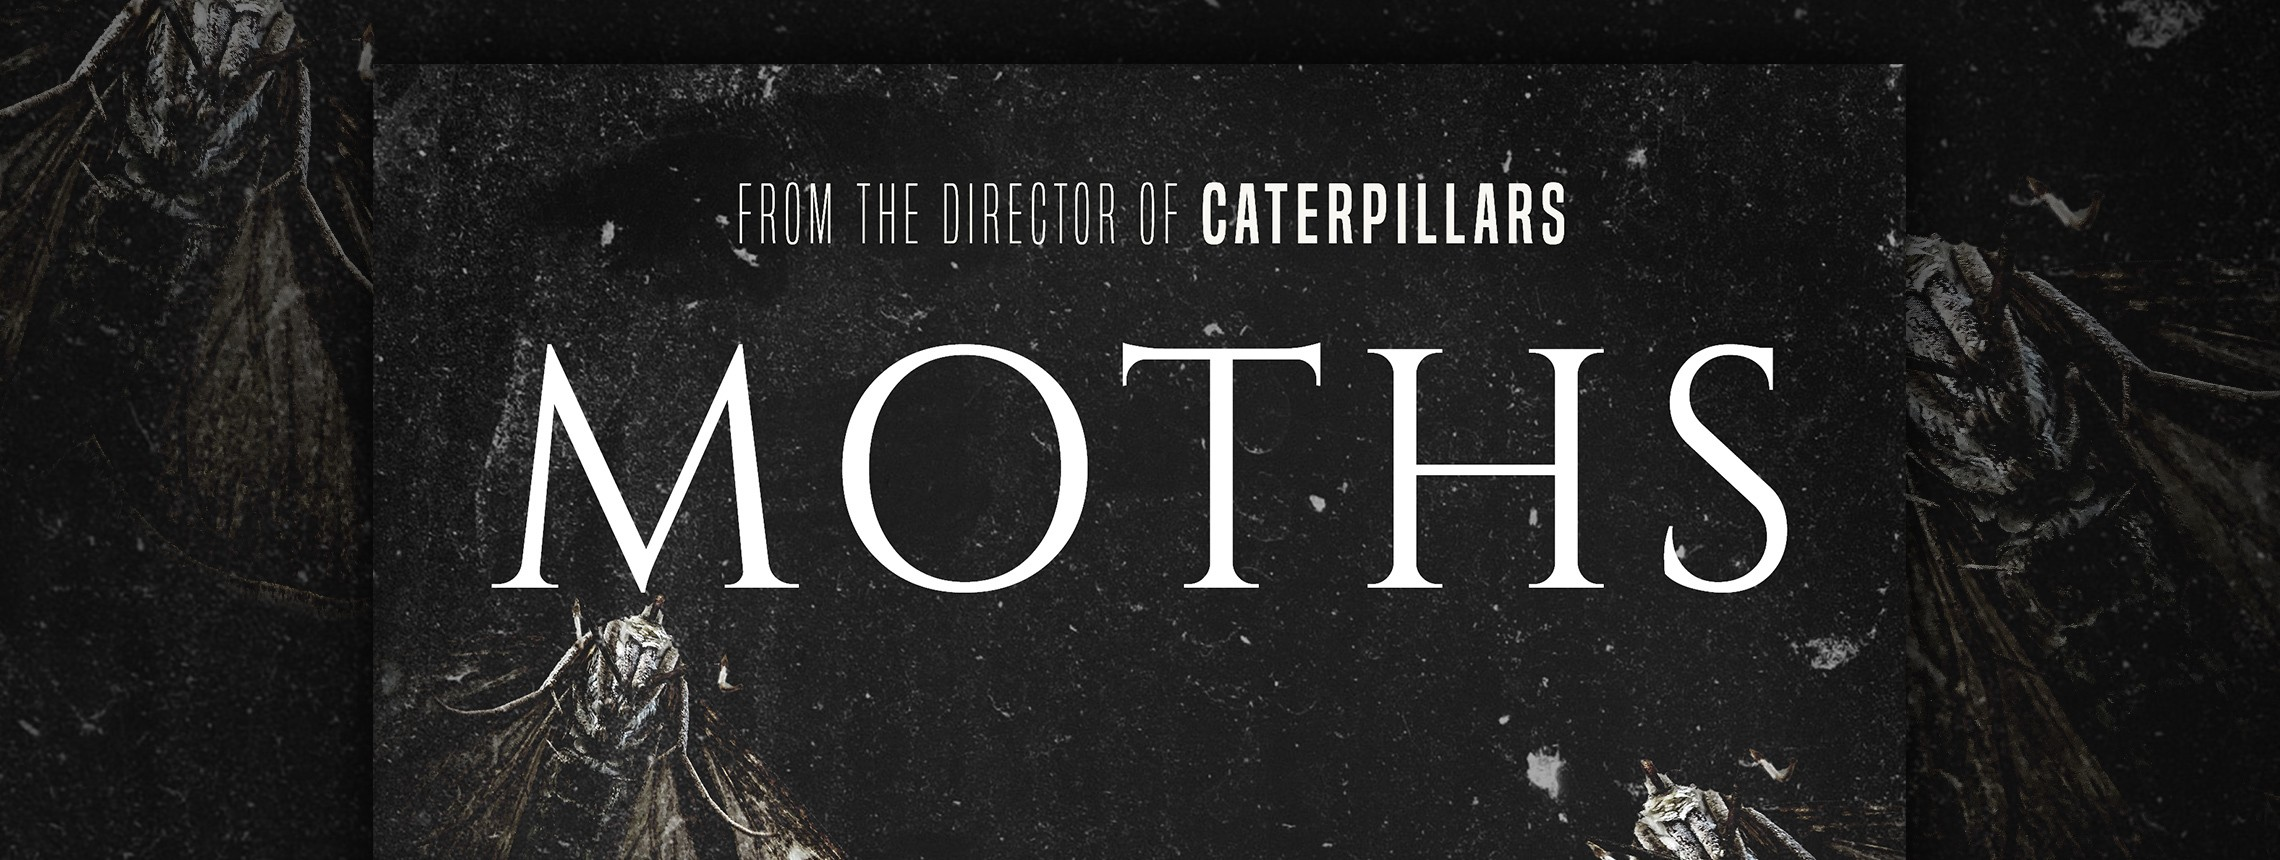 How to Create a Creepy Crawly Horror Movie Poster